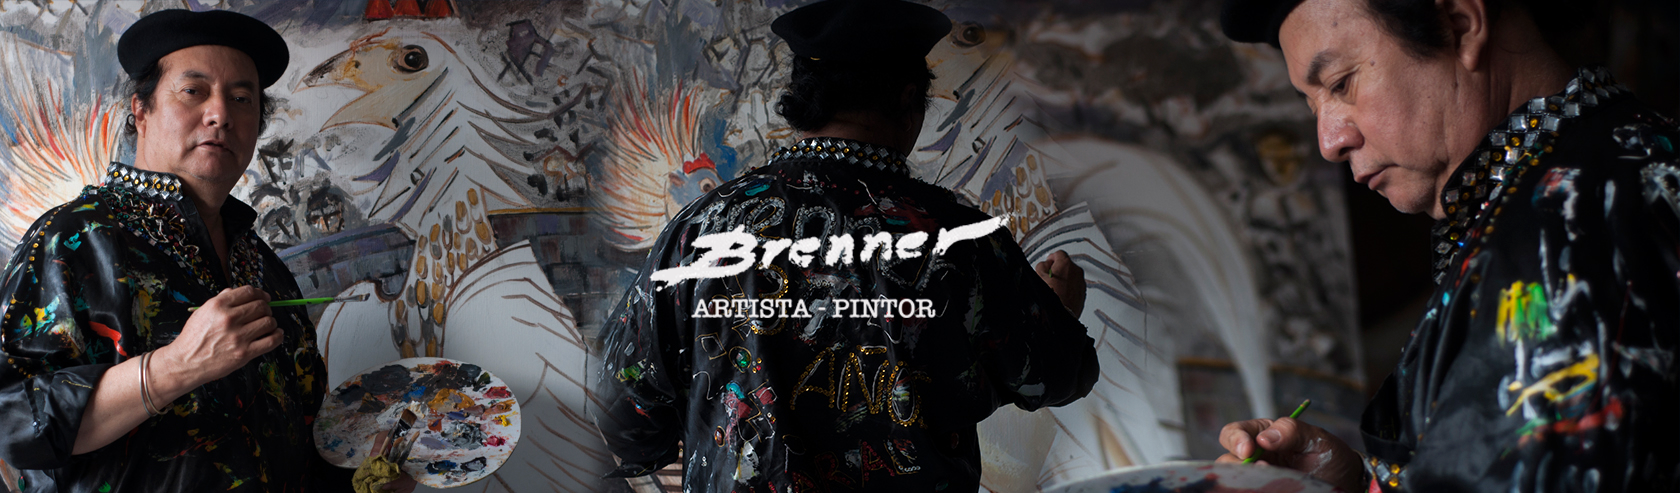 Miguel-Brenner-Pintor-Peruano-001-1